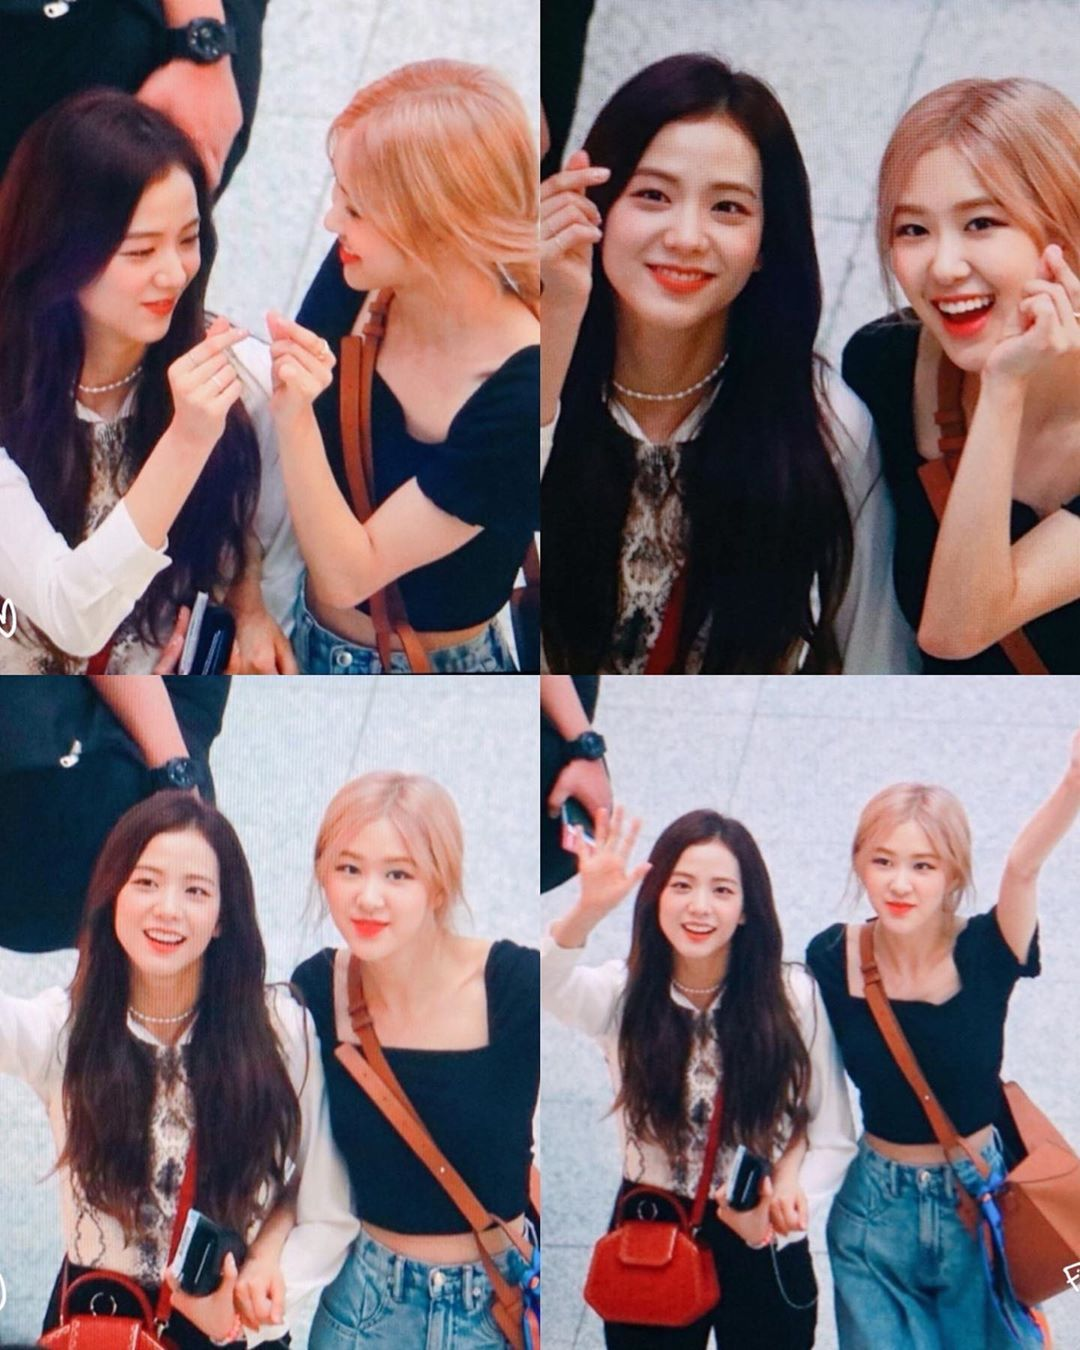 CHAESOO WALLPAPER Follow me on Instagram for more